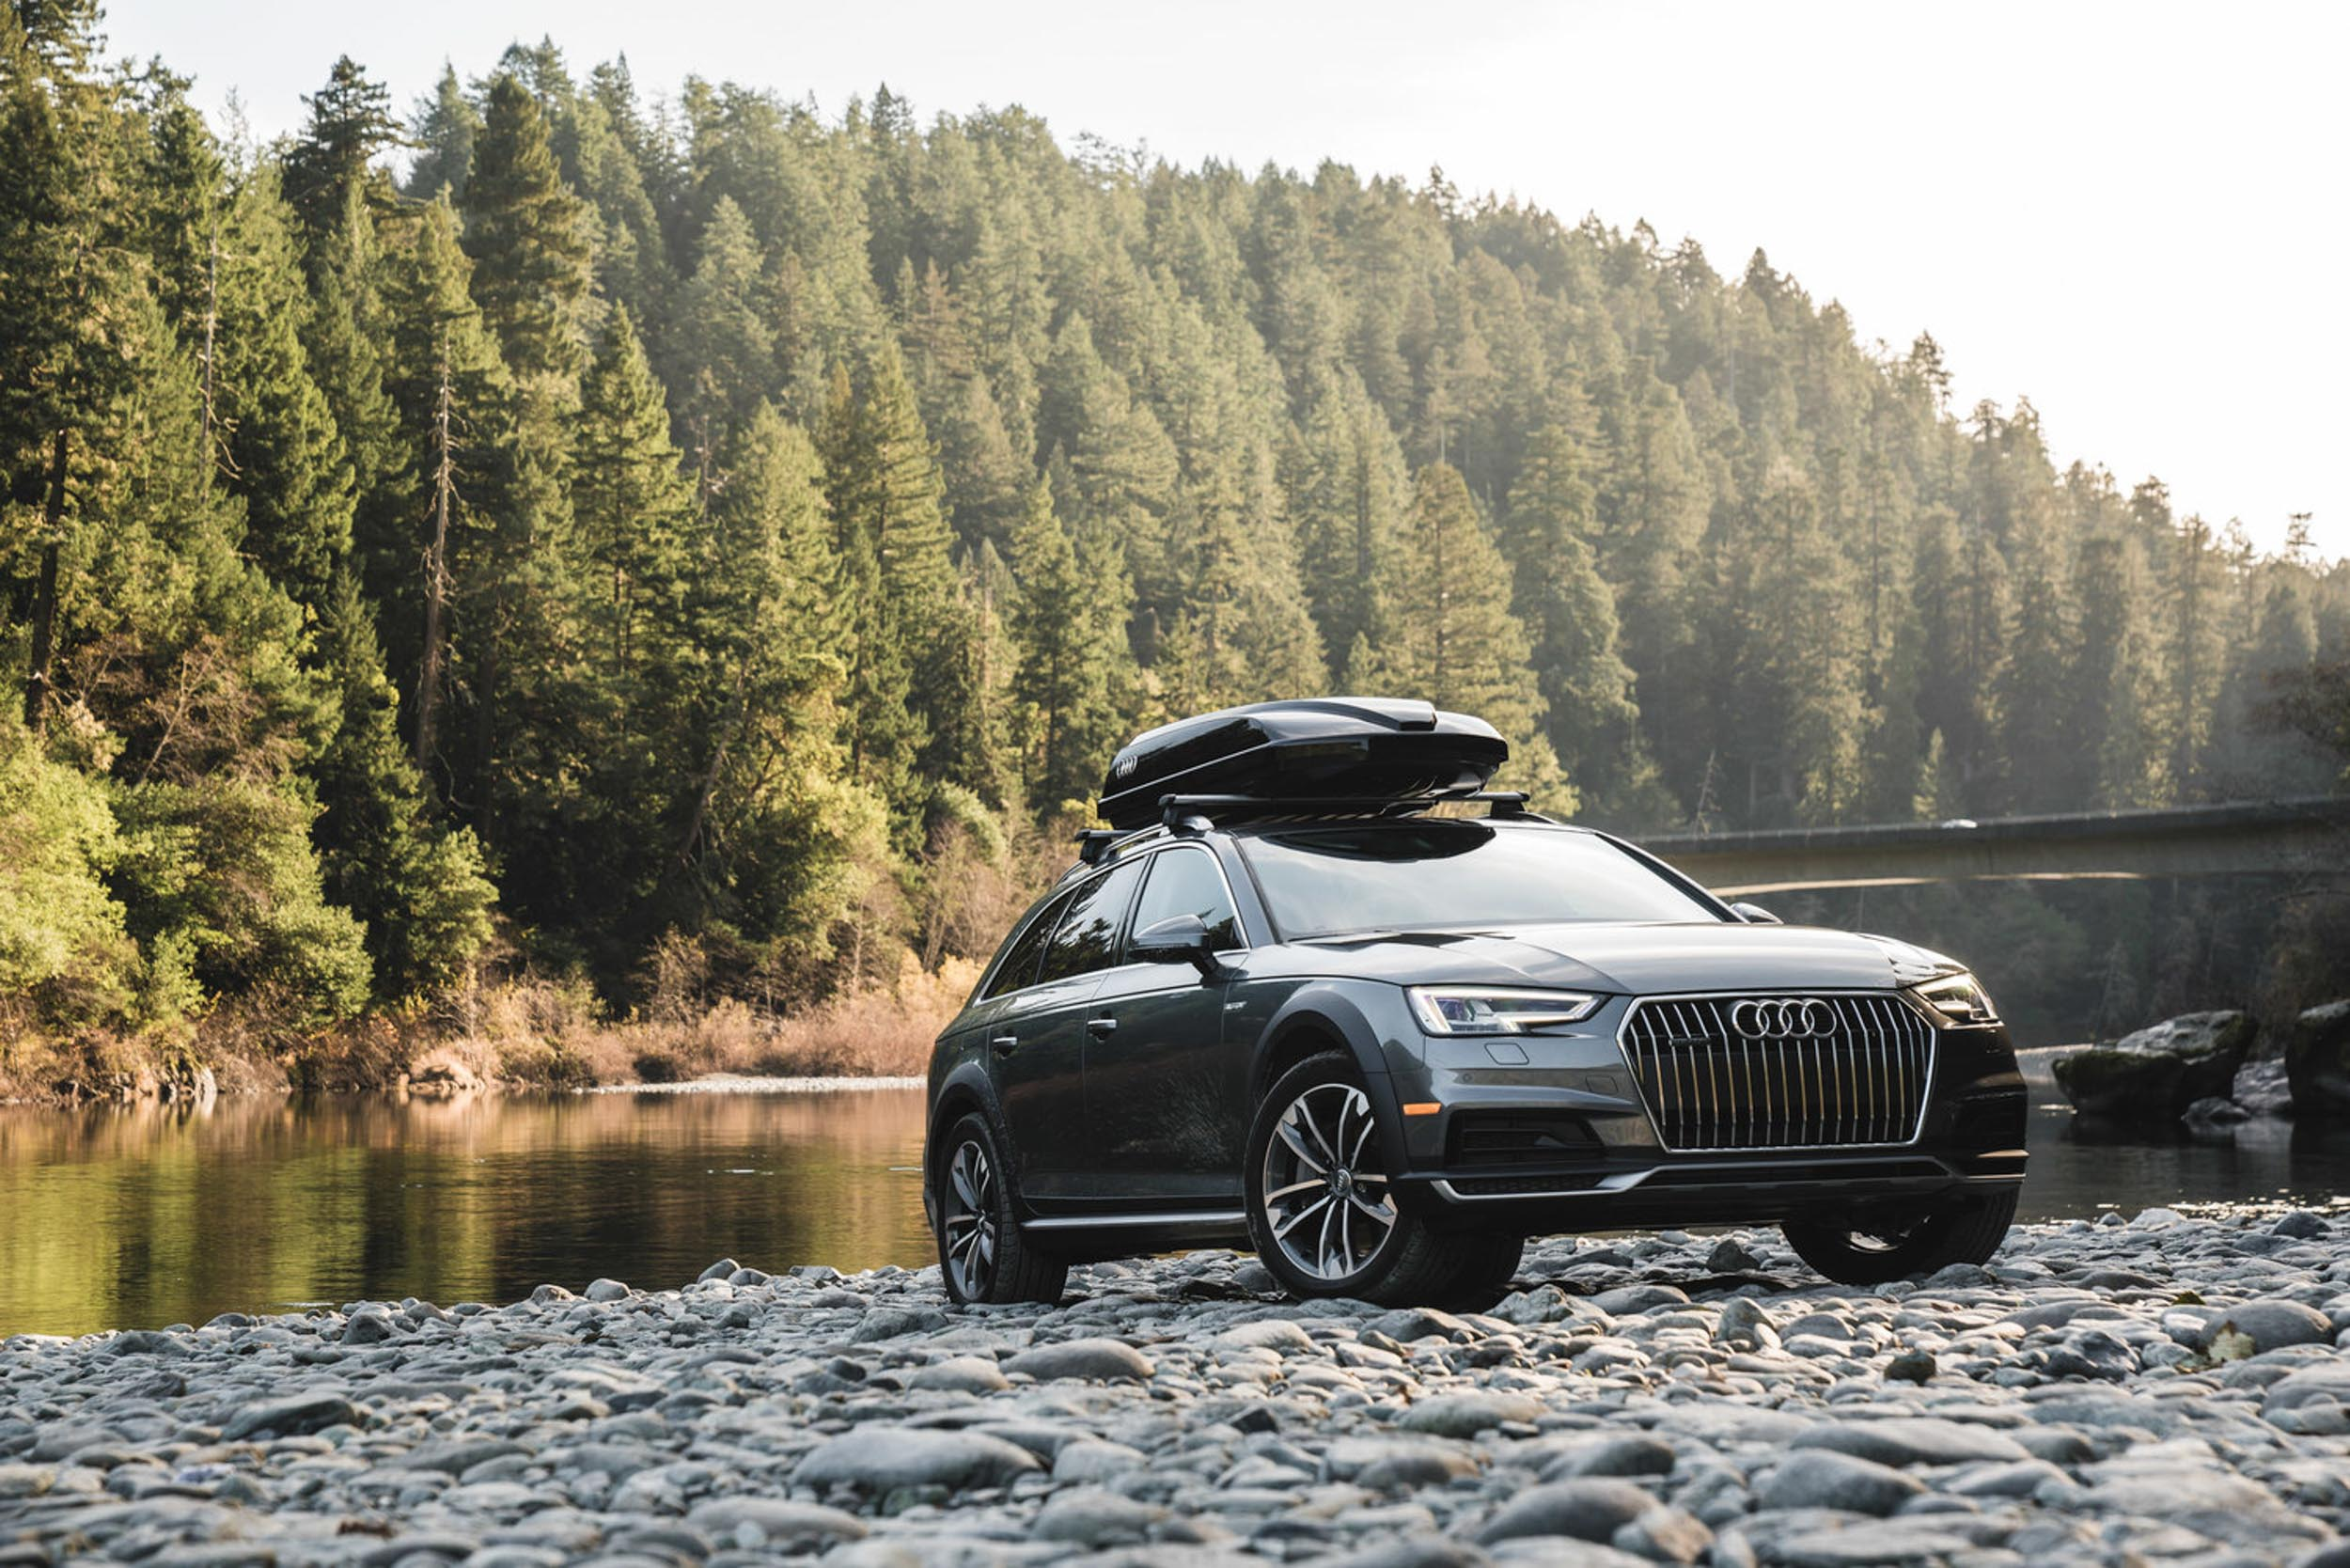 Travel-Smith-River-Audi-BAX9664